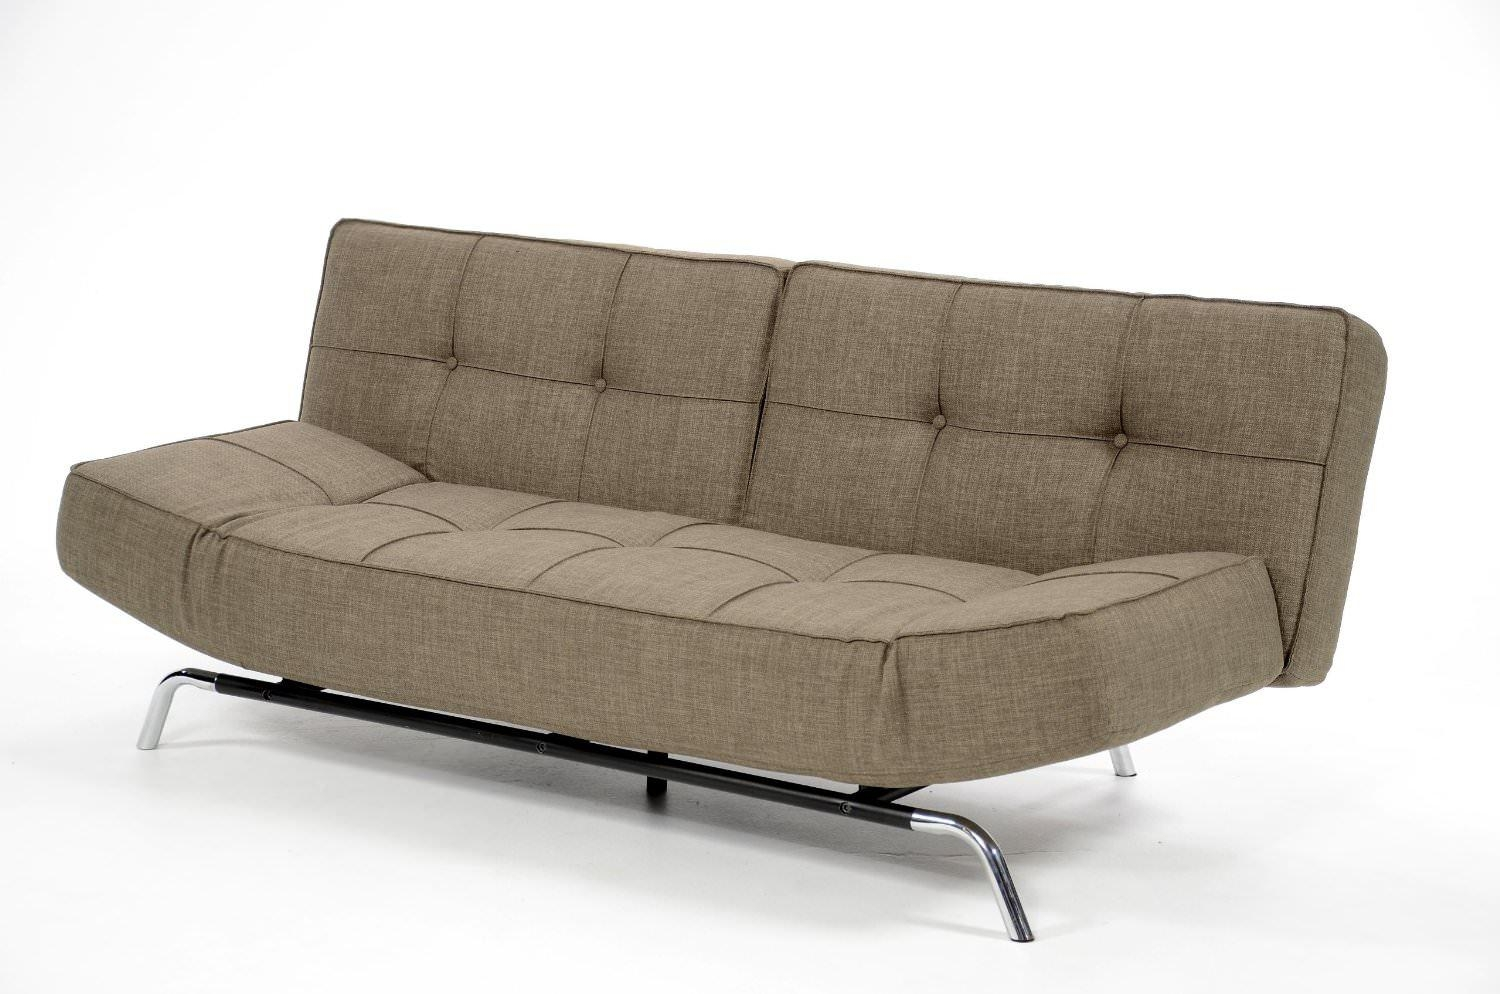 Beautiful Euro Lounger Sofa Bed 81 For Your Carlyle Sofa Beds With Regarding Euro Lounger Sofa Beds (Image 1 of 20)